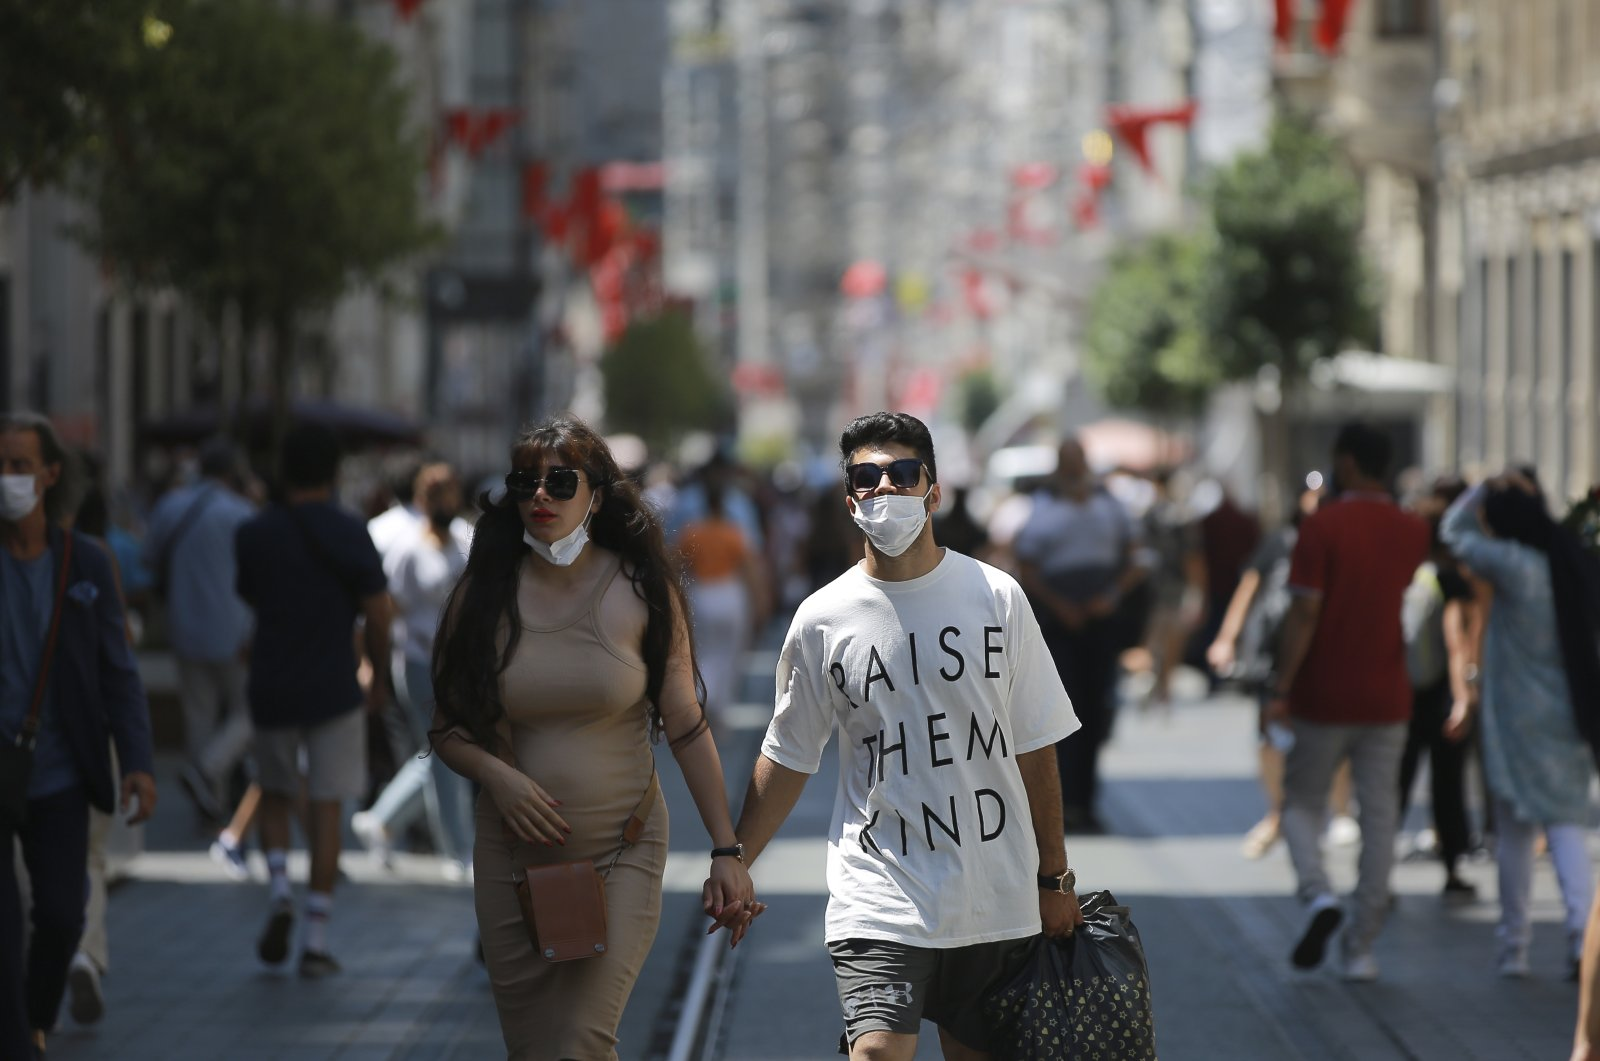 People walk along Istiklal Street, the main shopping street in Istanbul, Turkey, Tuesday, July 27, 2021. (AP Photo)